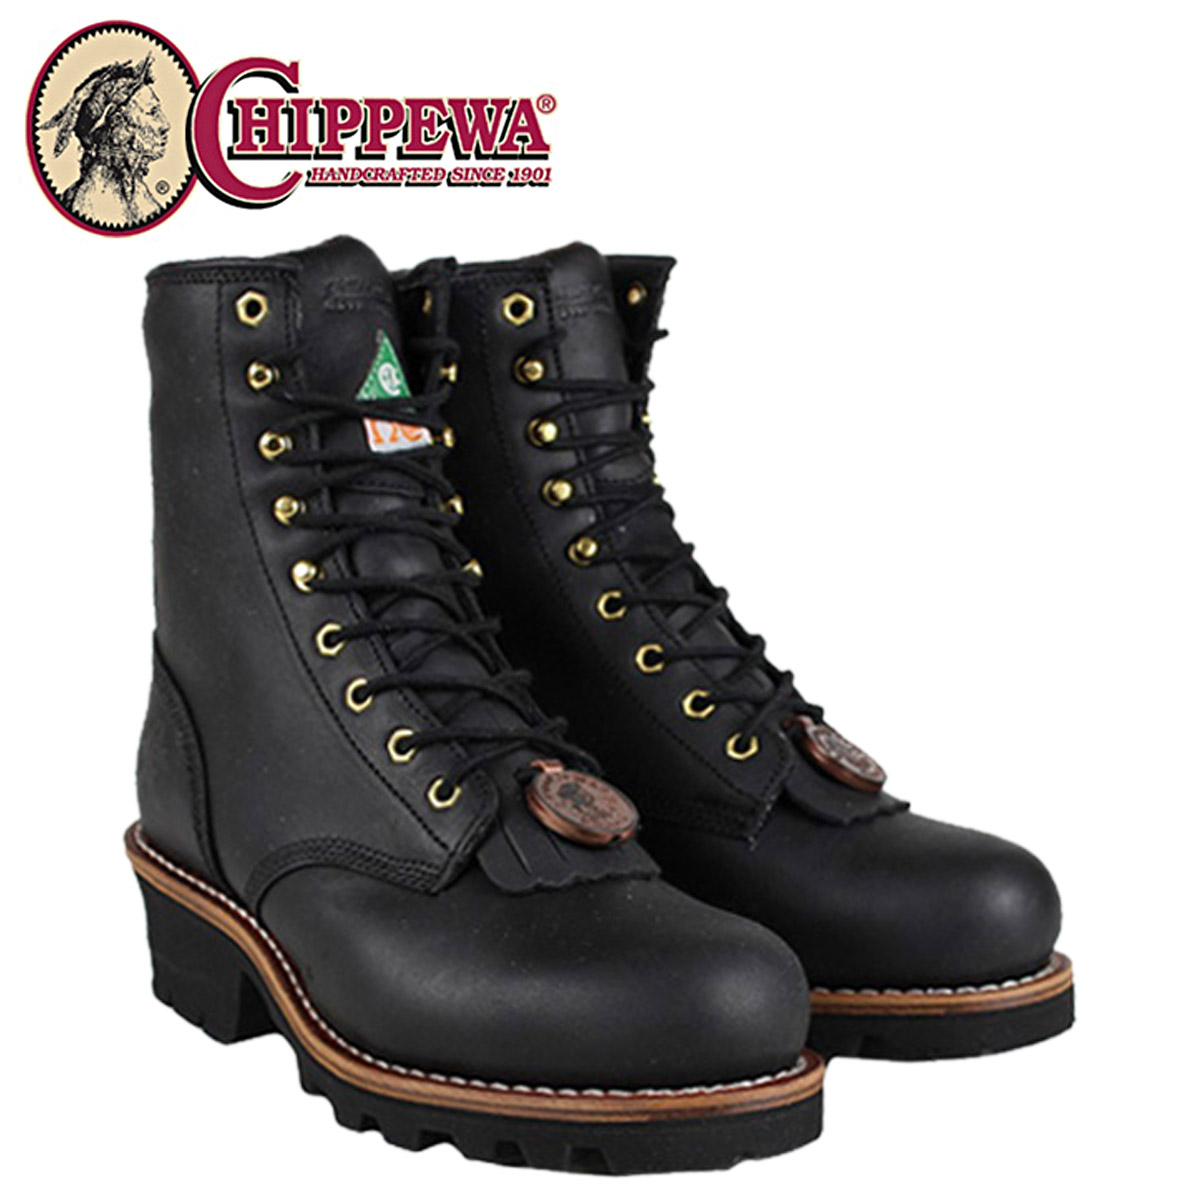 acbb297dcb5 Chippewa CHIPPEWA 8-inch logger boots CA73020 8INCH BLACK STEEL TOE LOGGER  2 wise leather mens BLACK